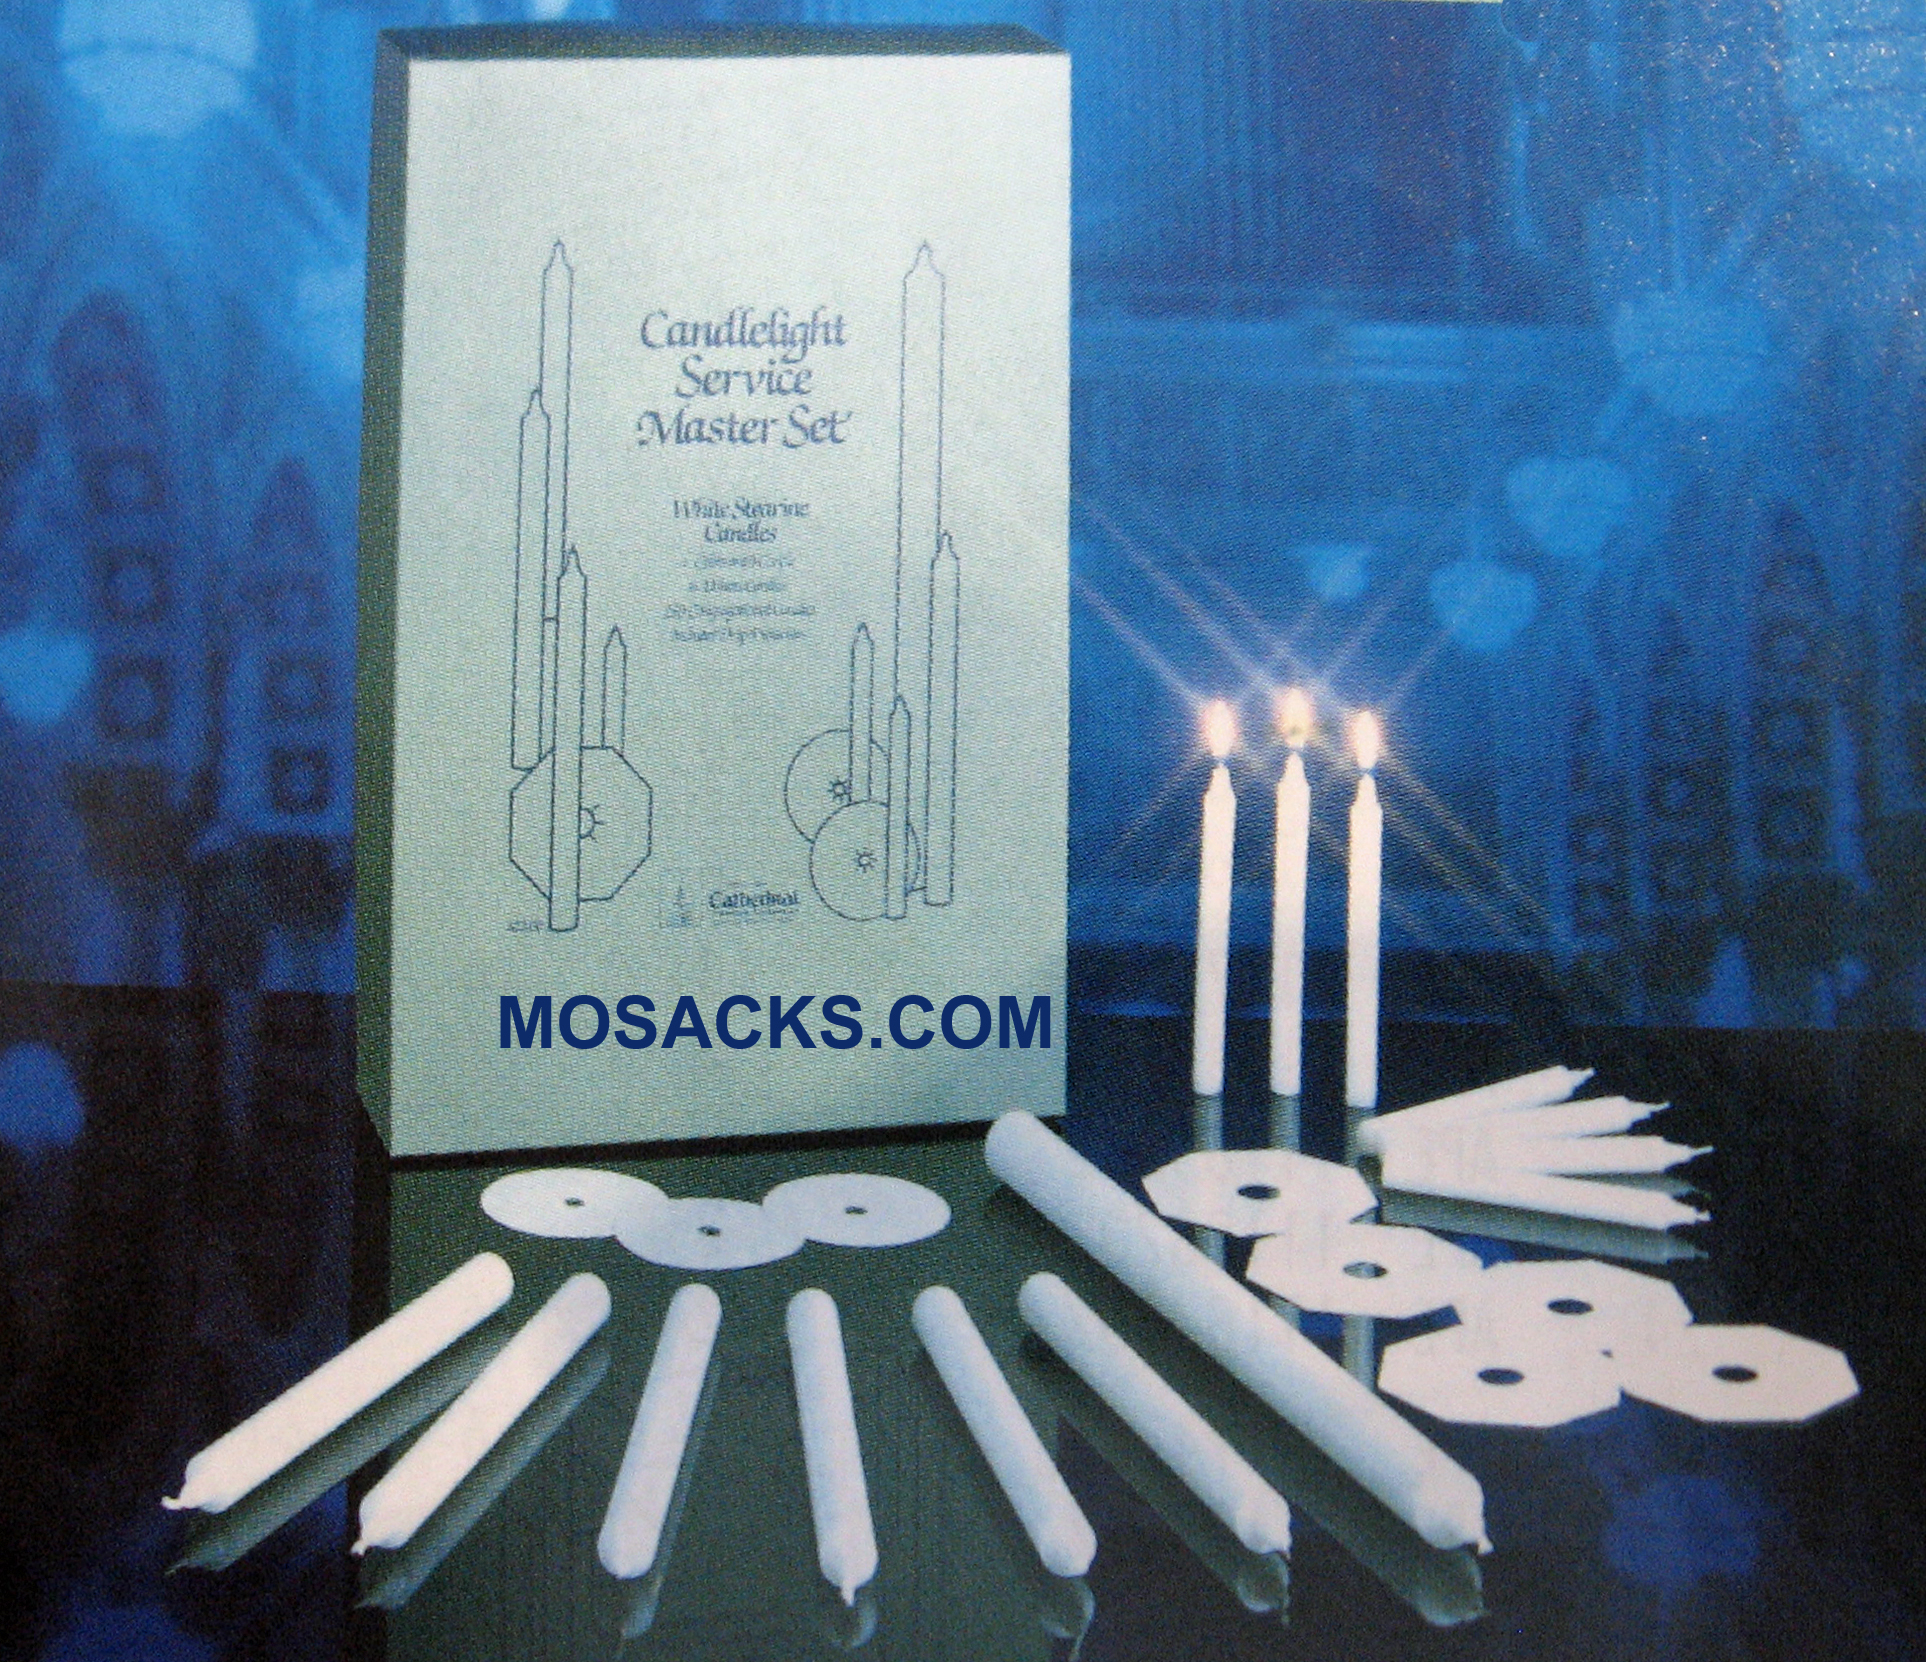 Candlelight Master Service Set for 425, Cathedral